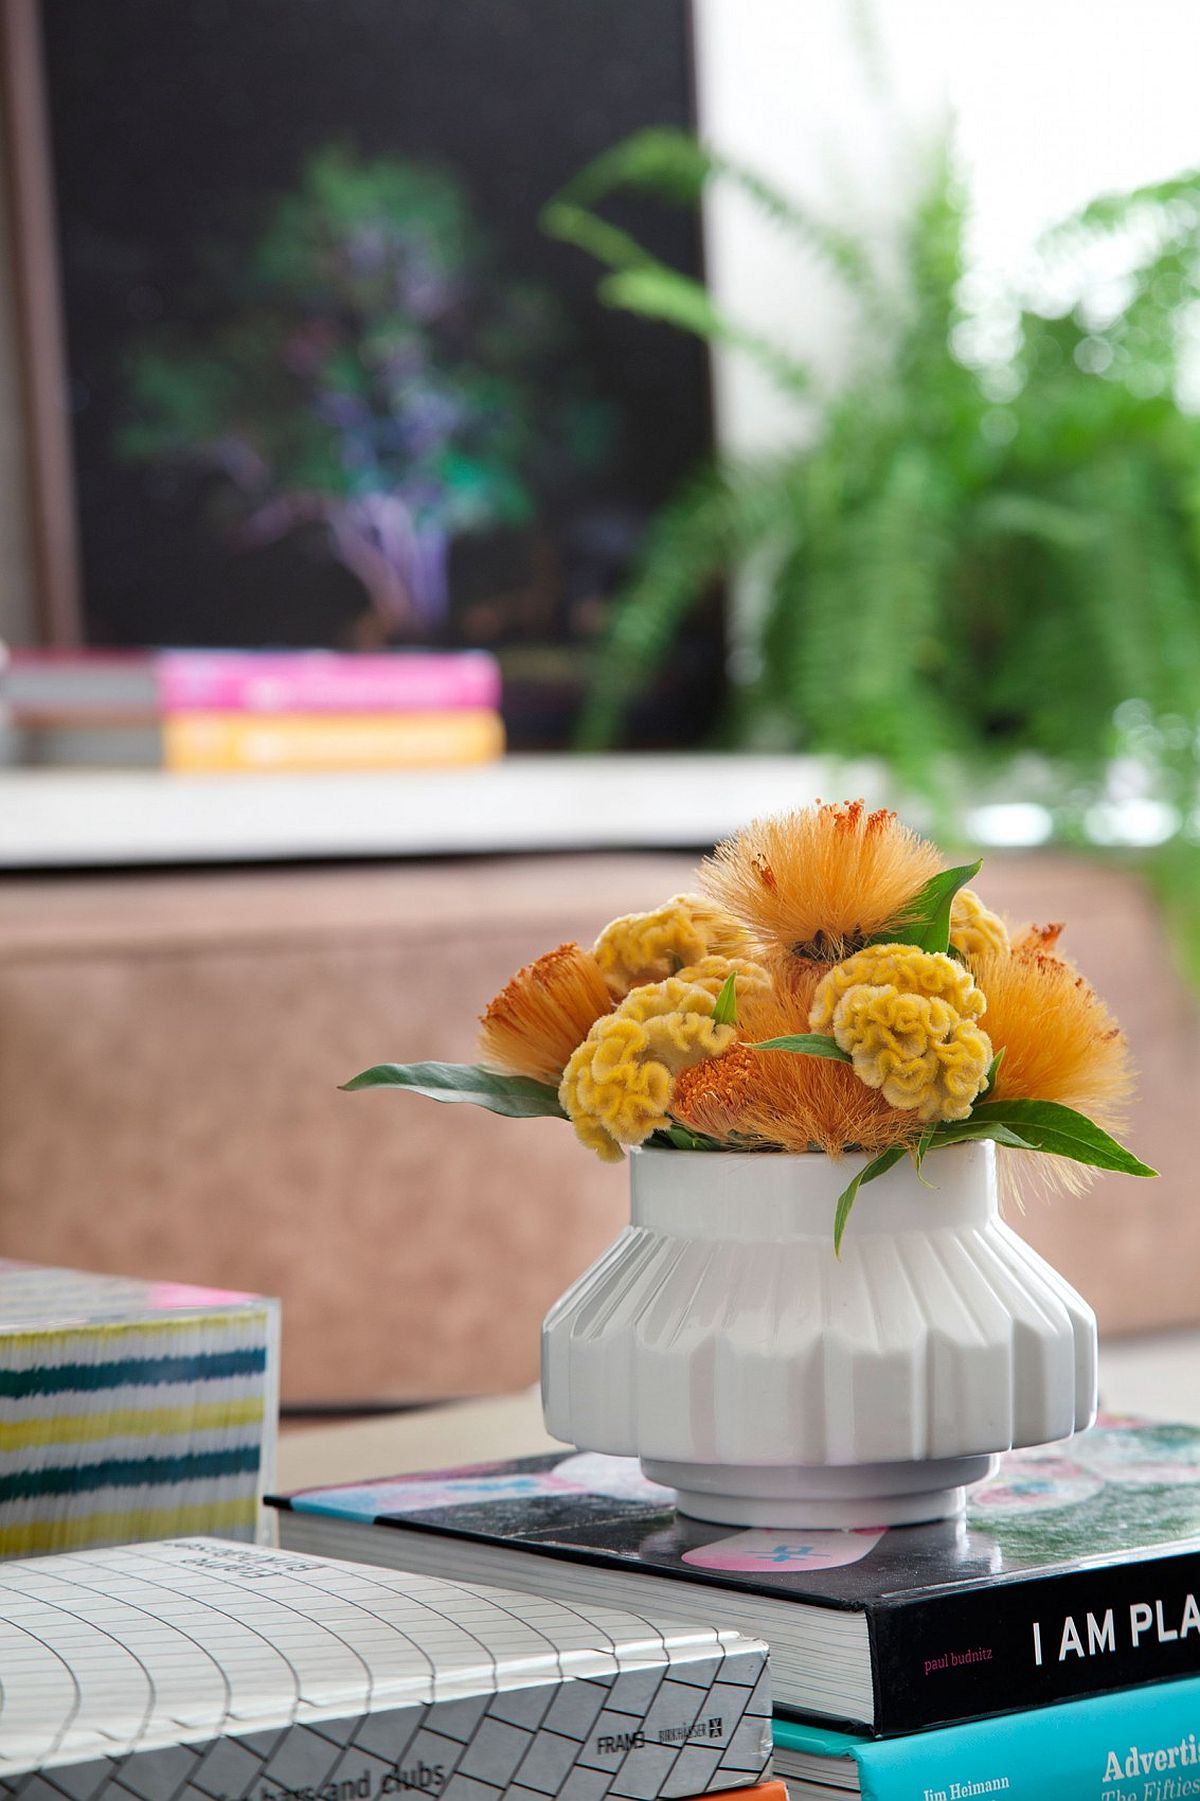 Colorful flowers add freshness and cheerful allure to the interior